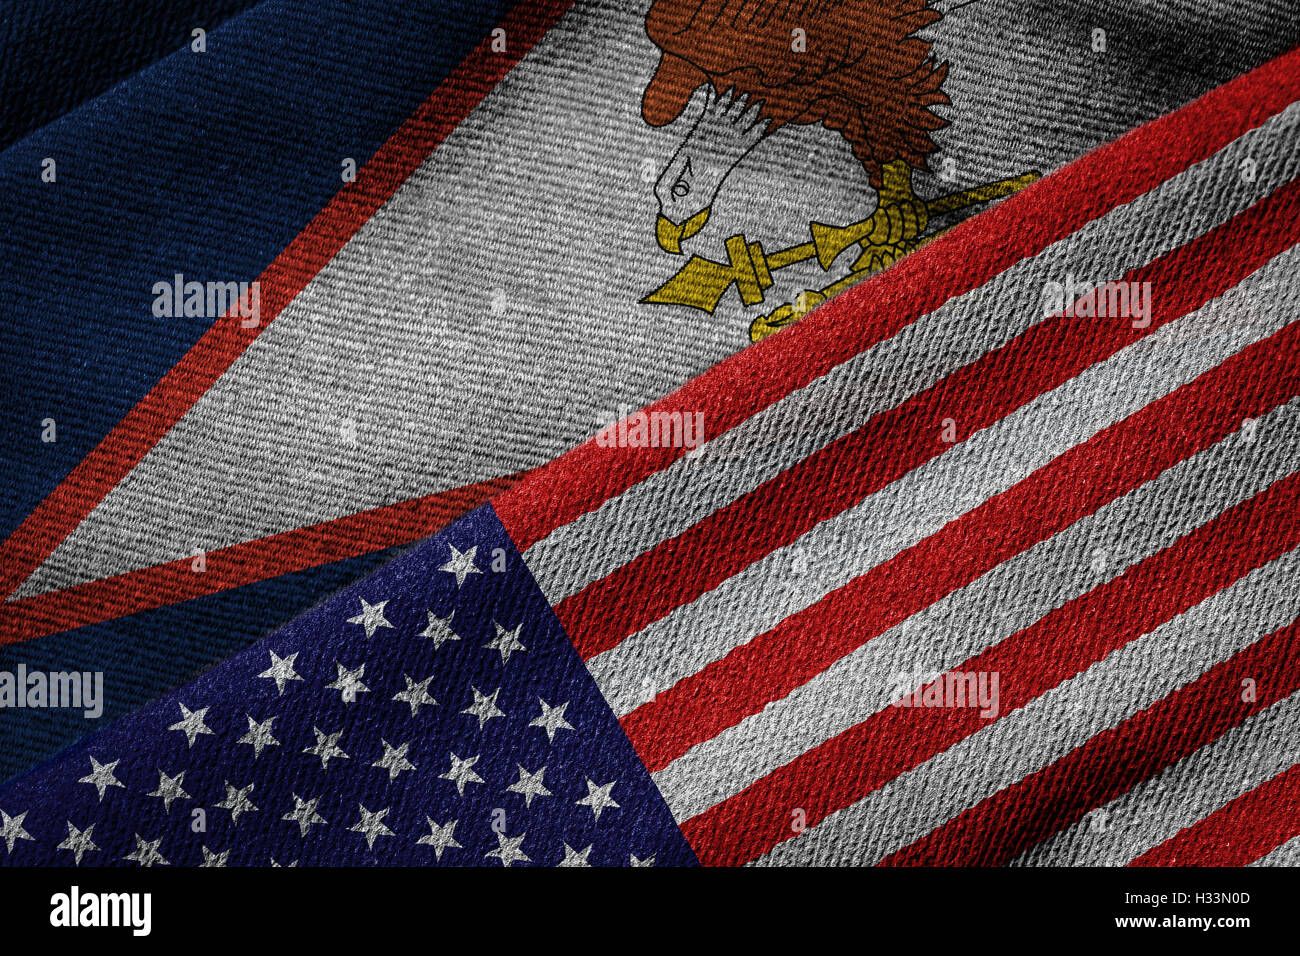 3D rendering of the flags of USA and American Samoa on woven fabric texture. American Samoa is a U.S. territory. Stock Photo